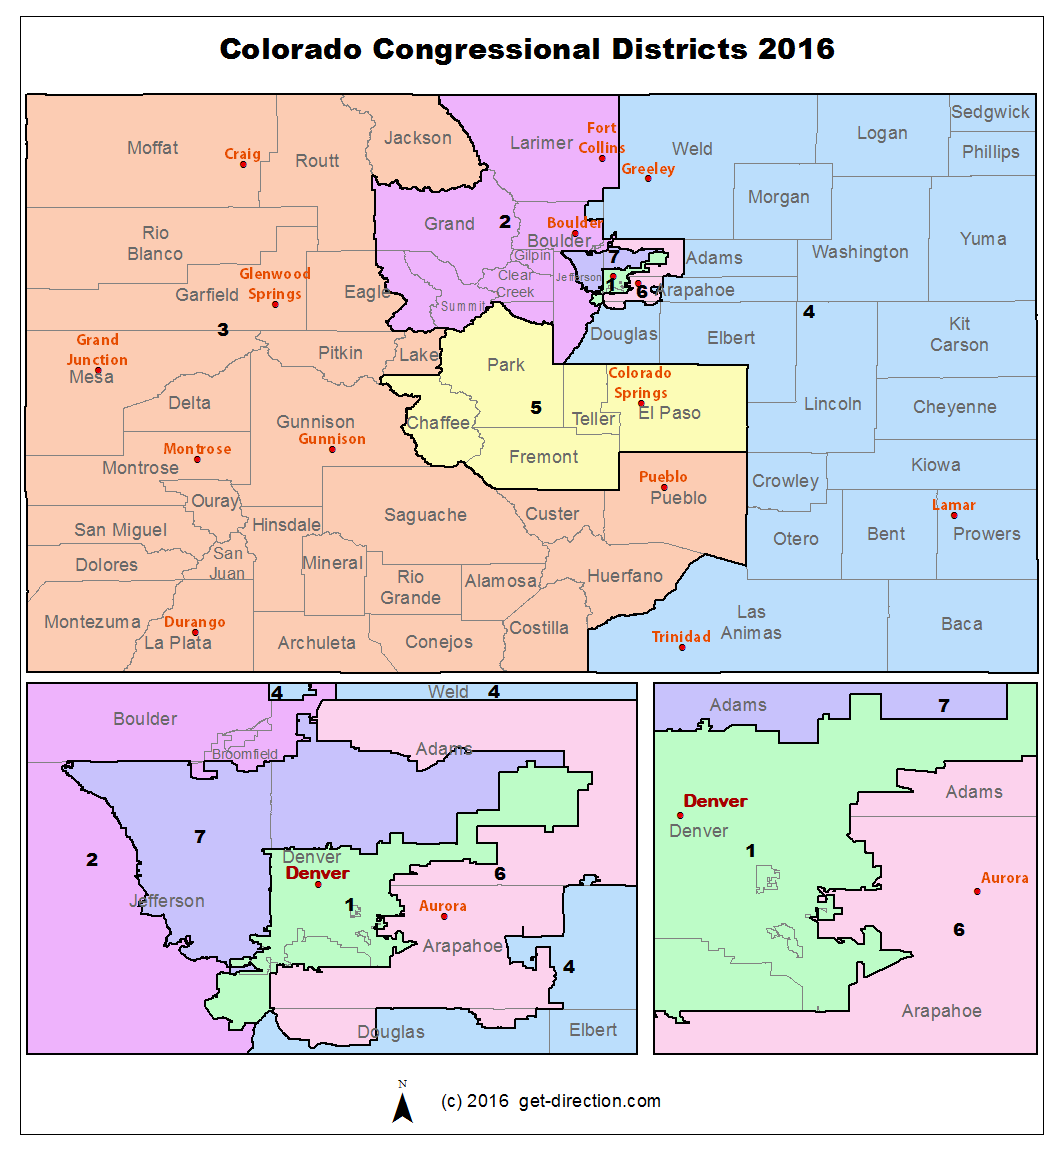 colorado-congressional-districts-2016.png